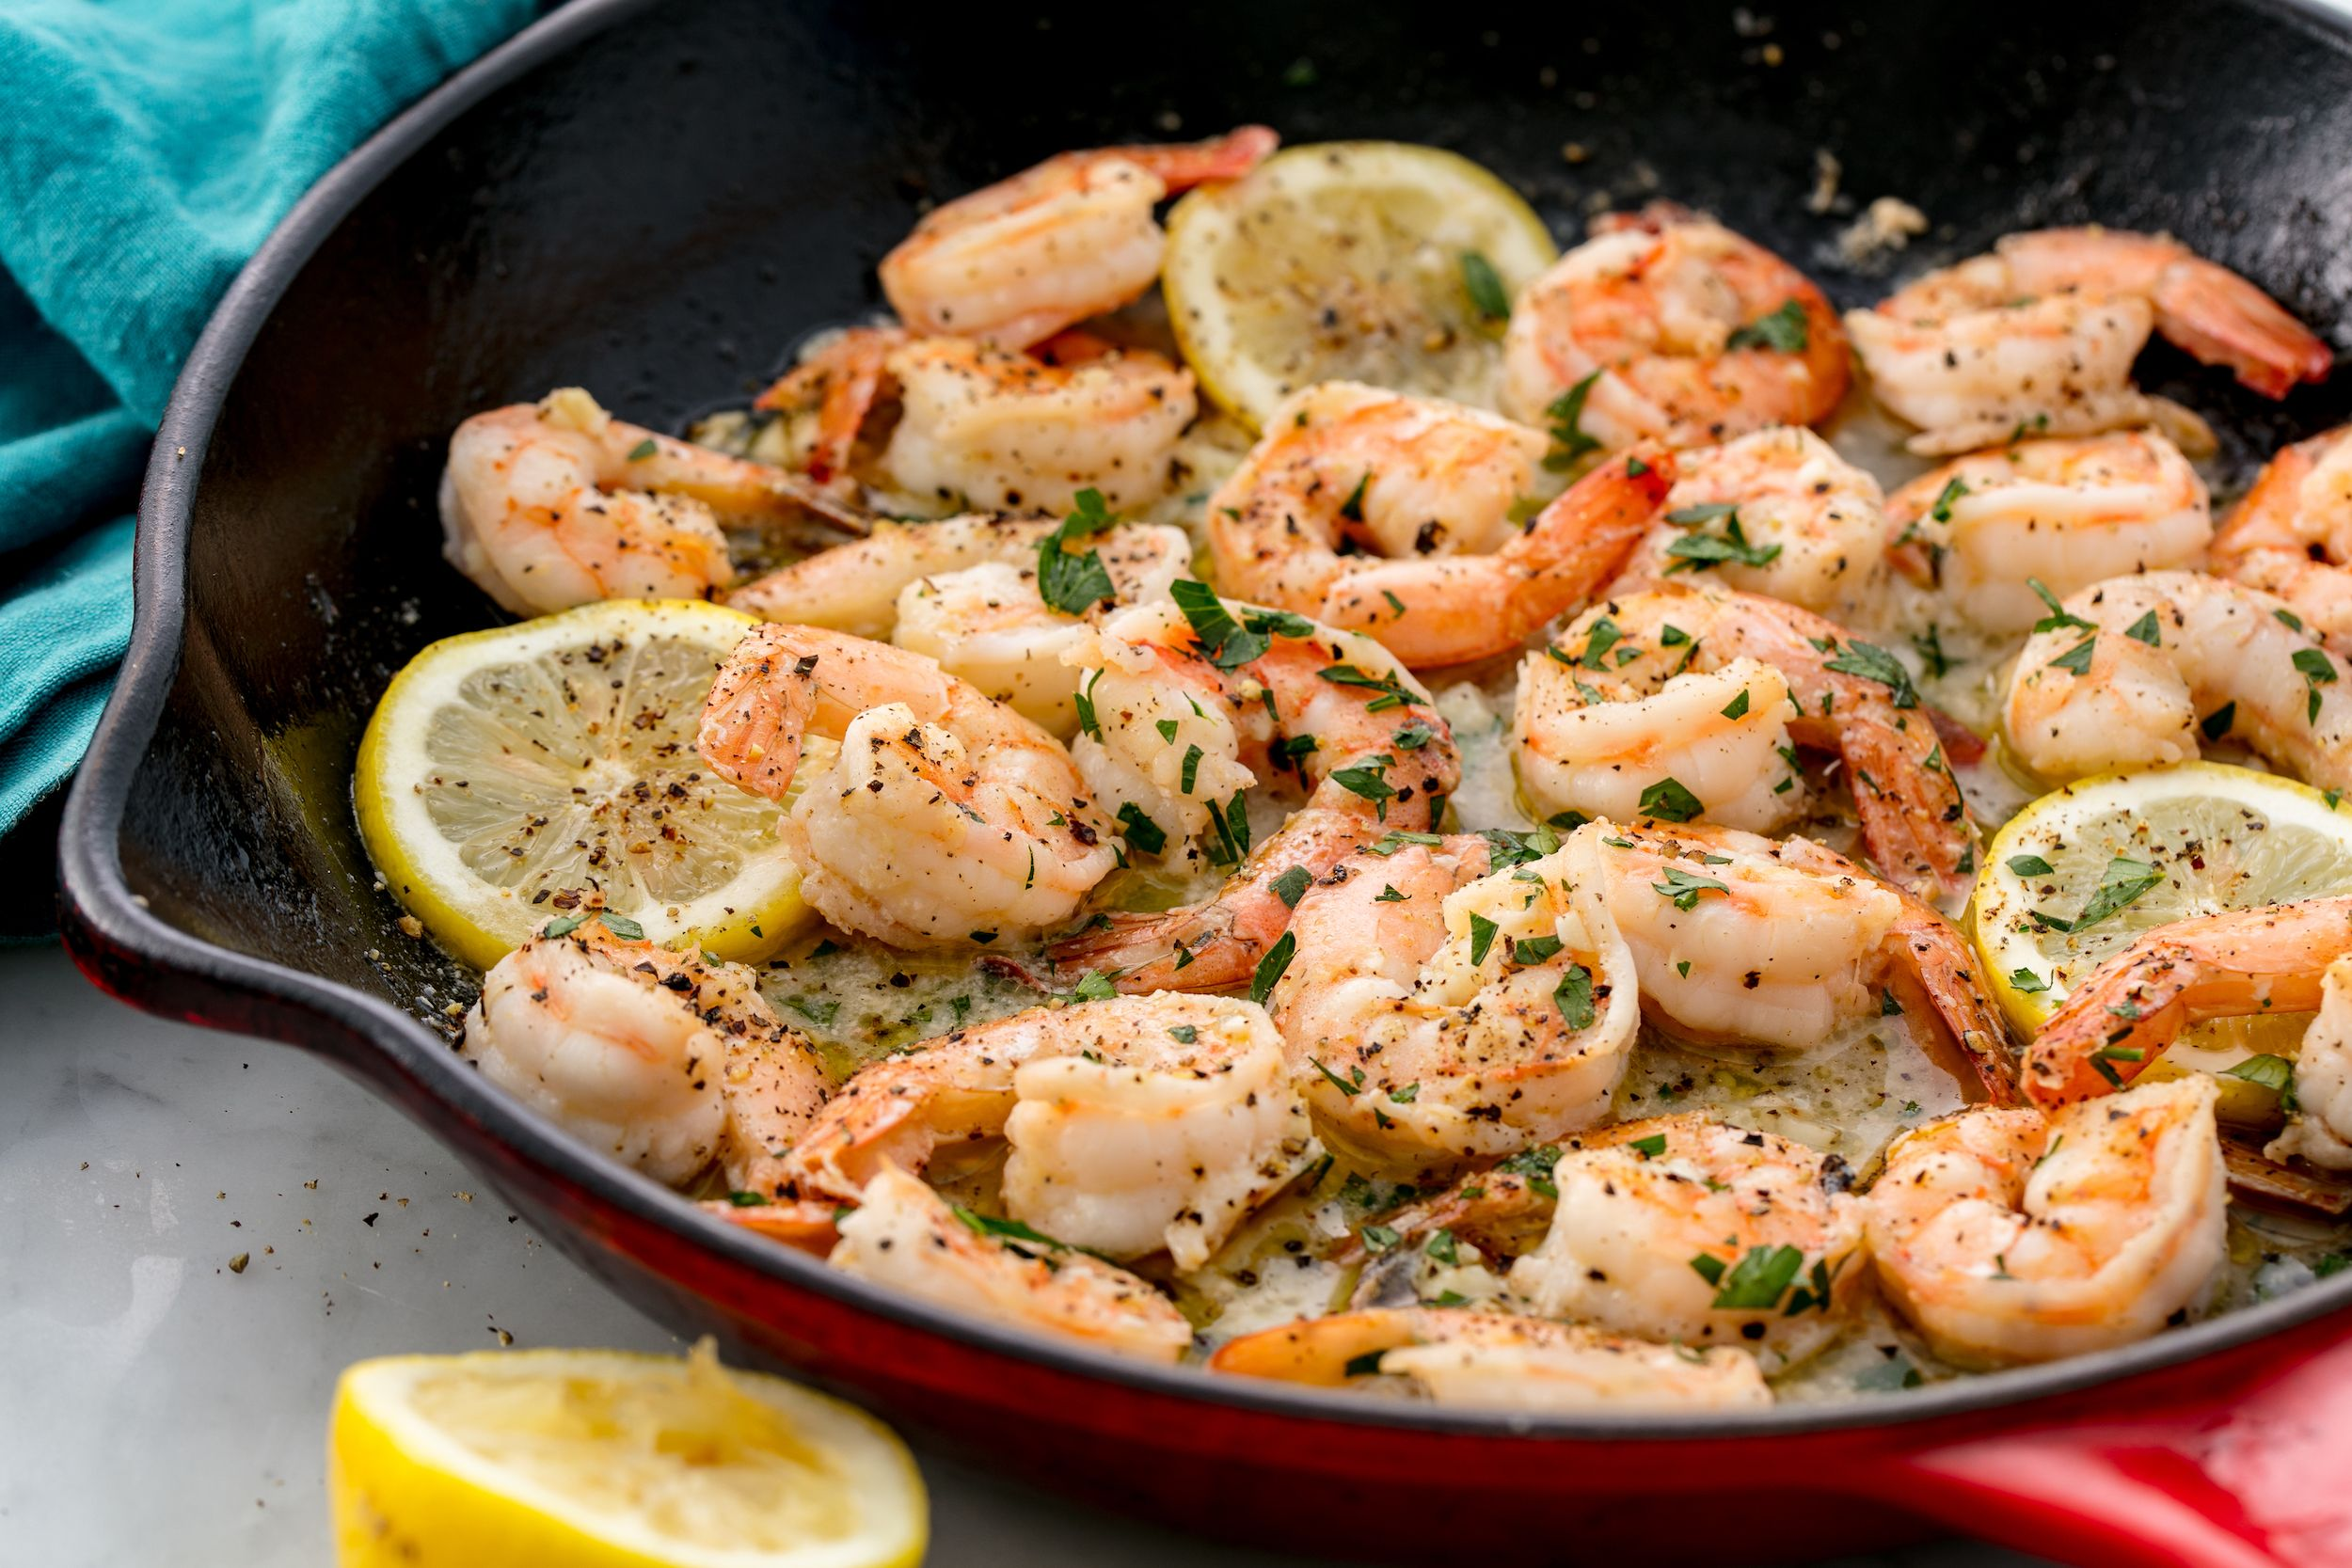 Best Lemon Garlic Shrimp Recipe How To Make Lemon Garlic Shrimp